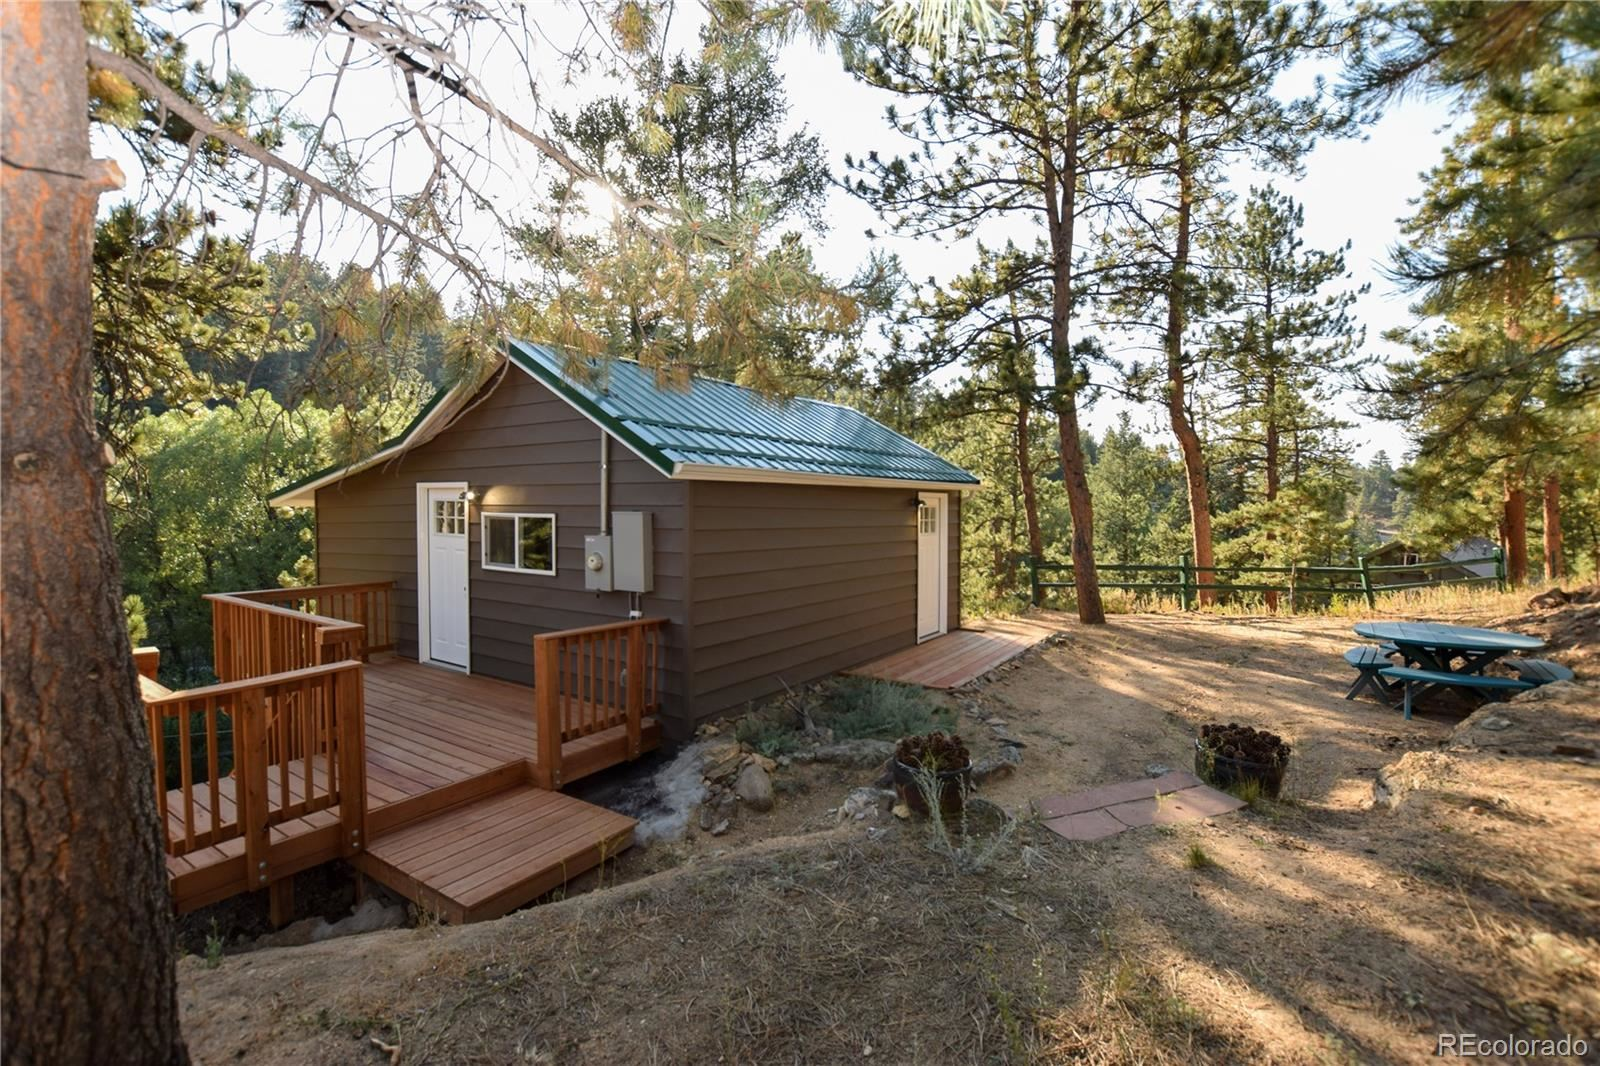 4972 Little Cub Creek Road, Evergreen, CO 80439 - #: 8774646